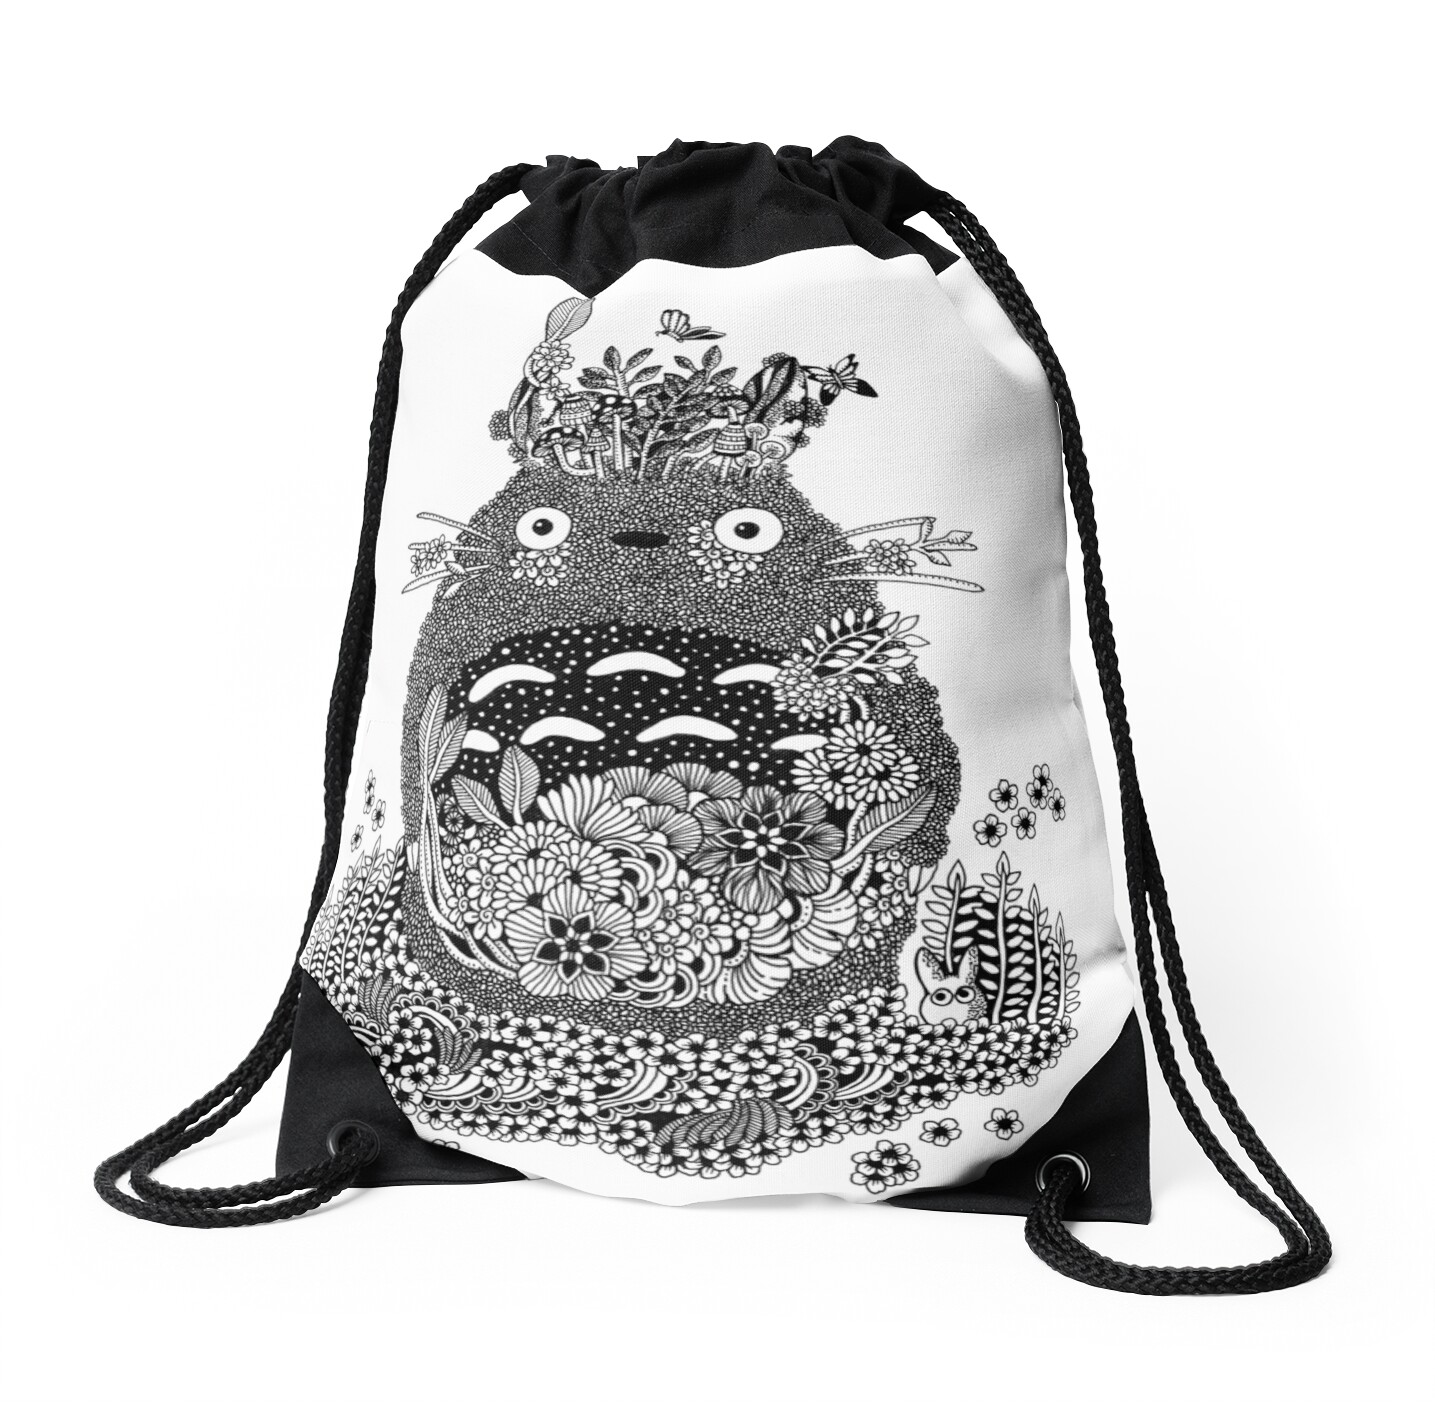 Totoro The Forest Spirit Black and White Doodle Art